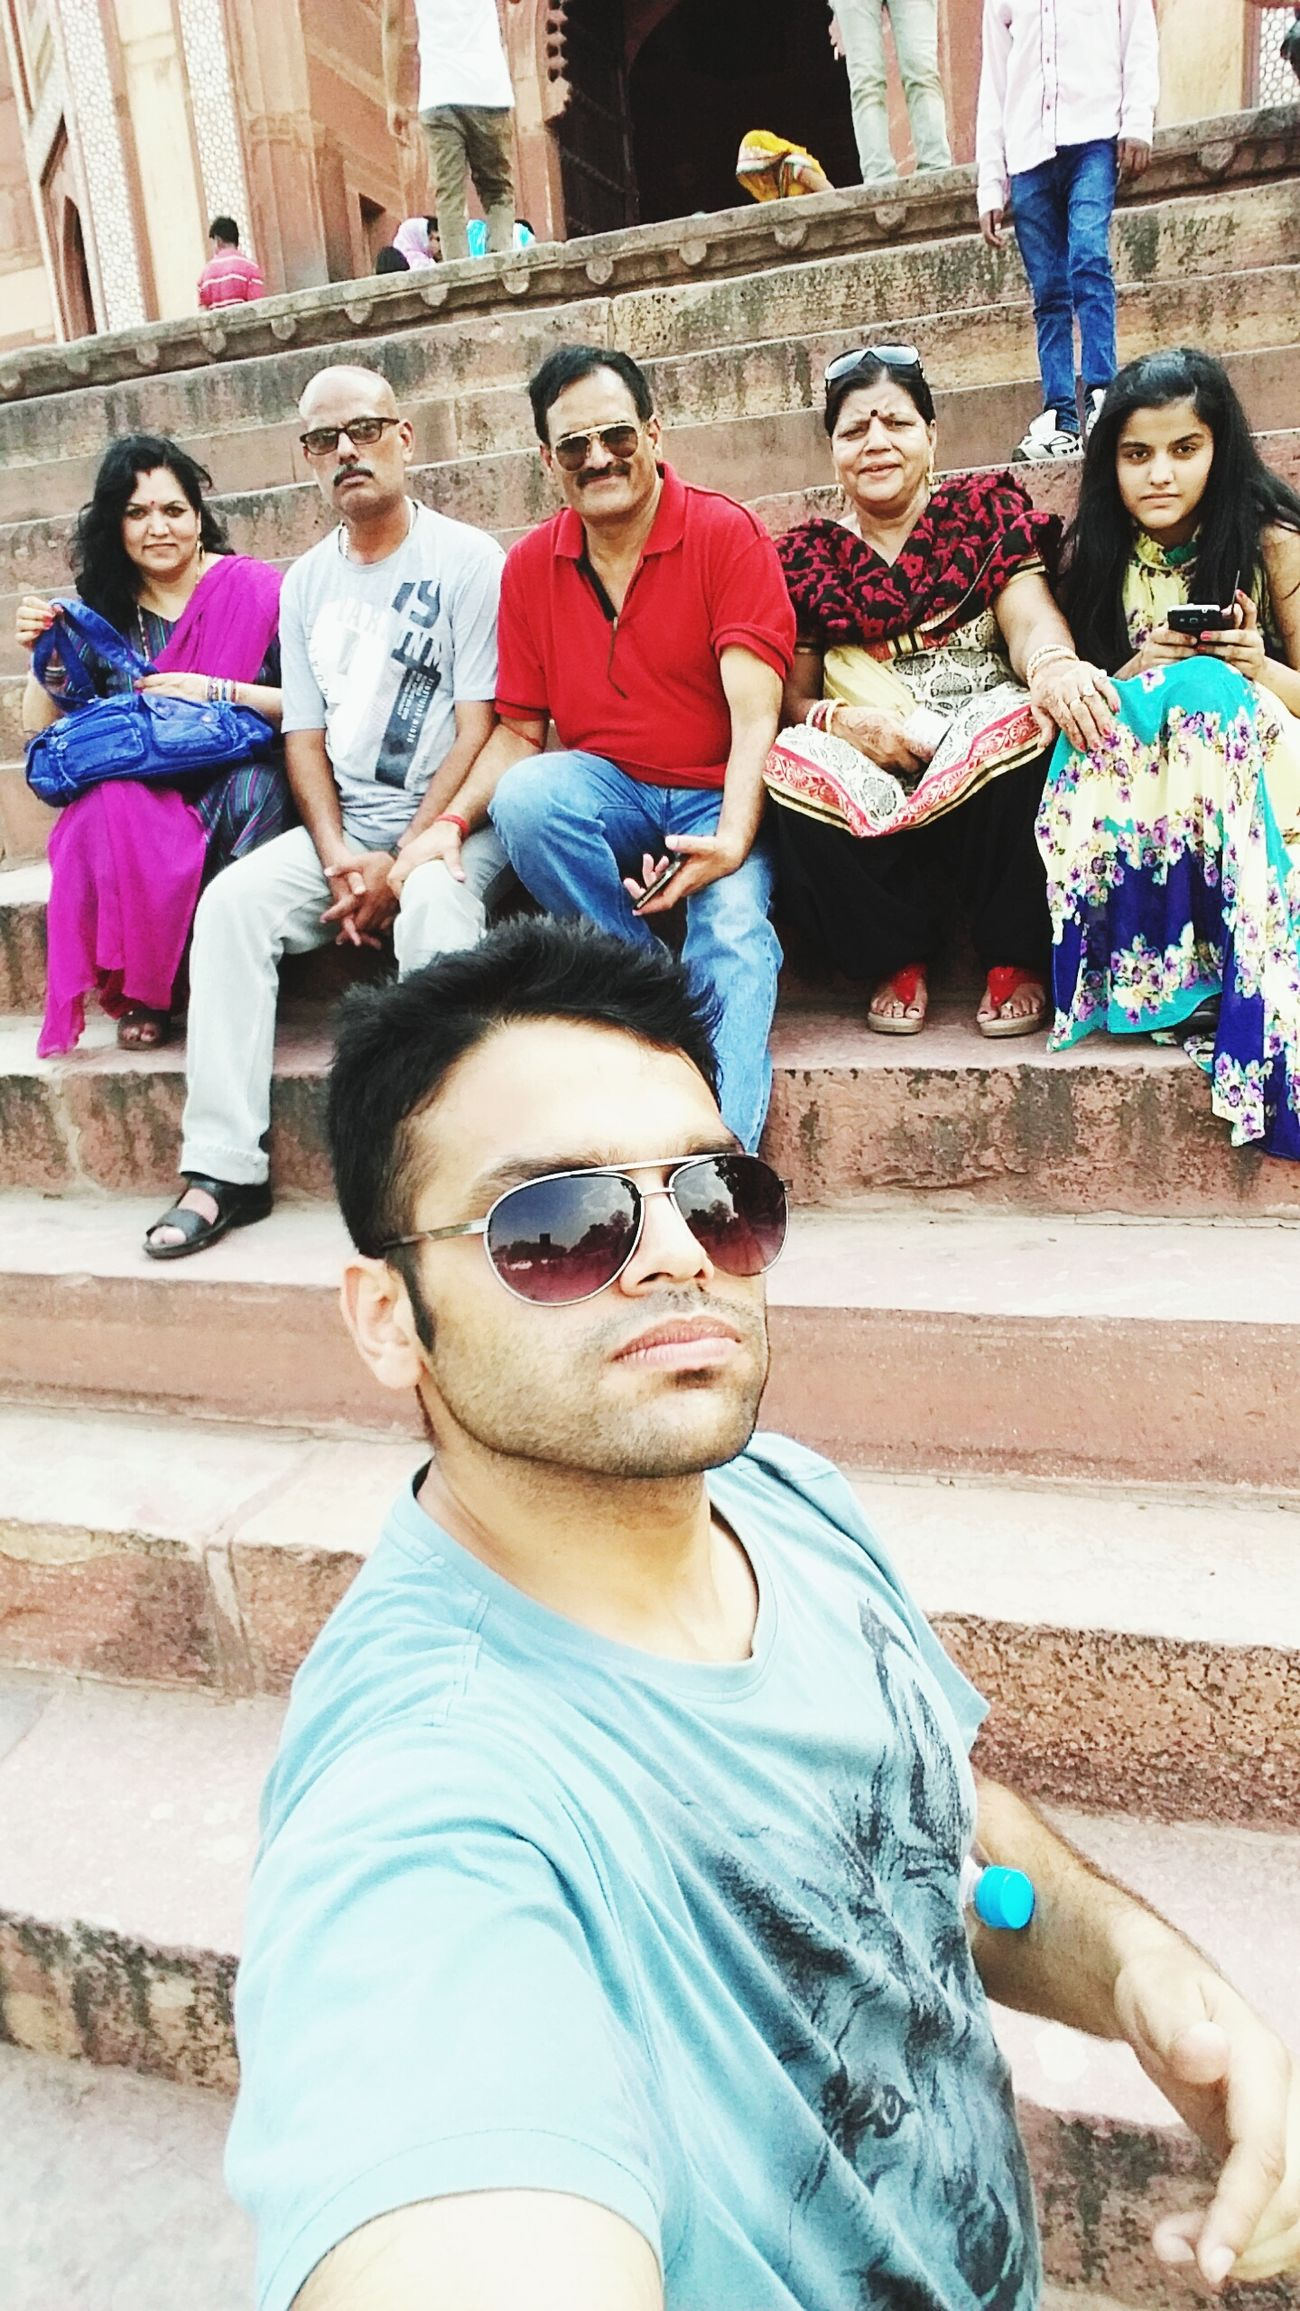 Selfie ✌ Come And Fit In My Selfie Indian Family India Today's Hot Look Hangout Big Family My Country In A Photo Cheese! Great Views